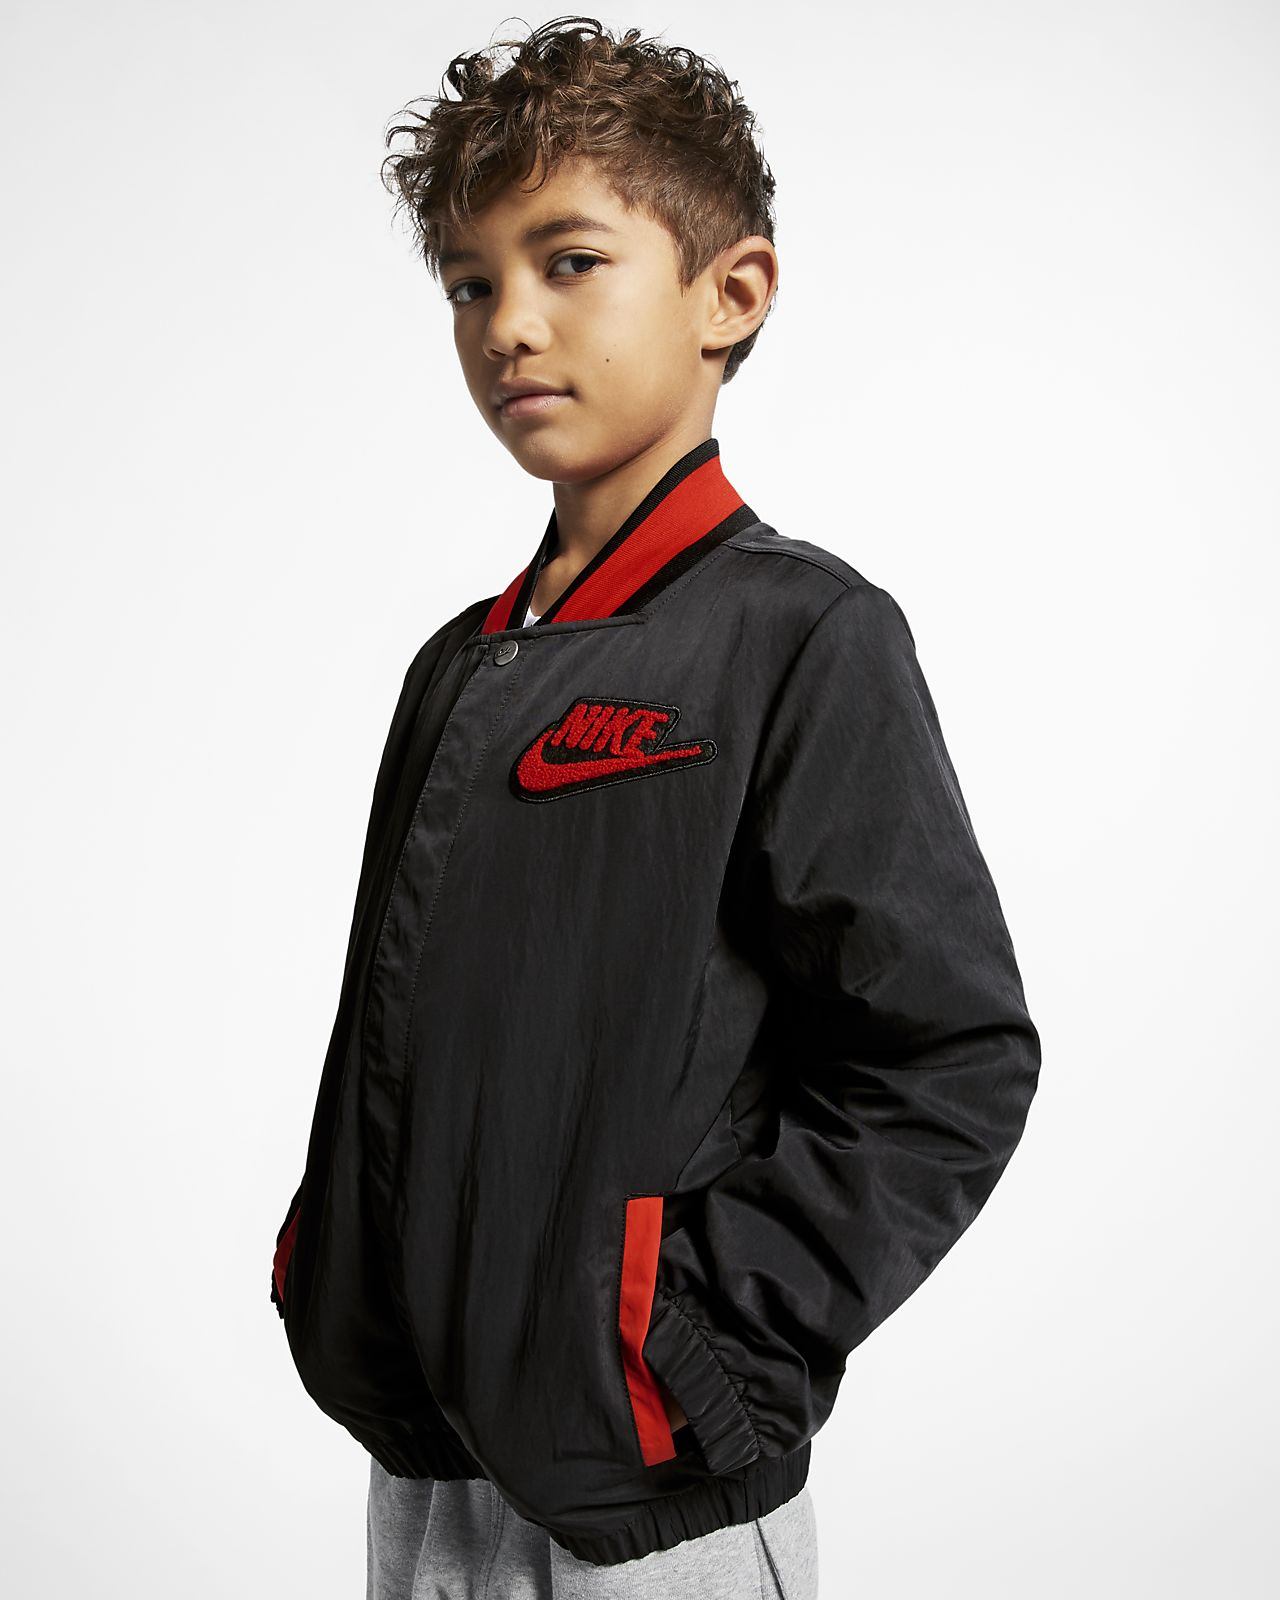 Nike Sportswear 'Hoopfly' Older Kids' (Boys') Jacket